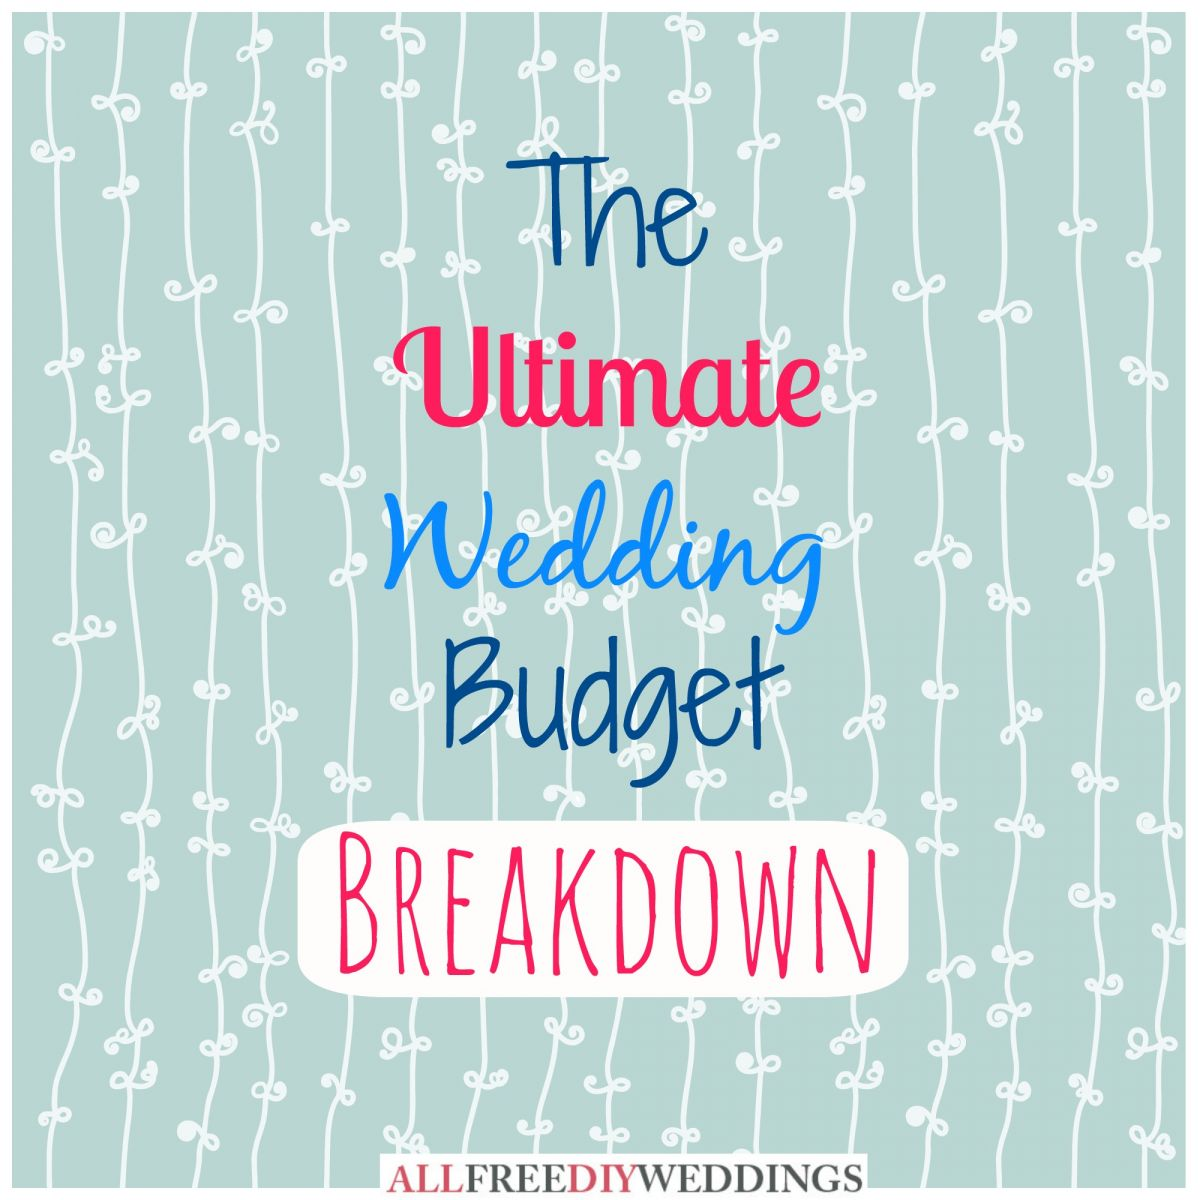 Wedding Planning Wedding Budget Breakdown AllFreeDIYWeddingscom